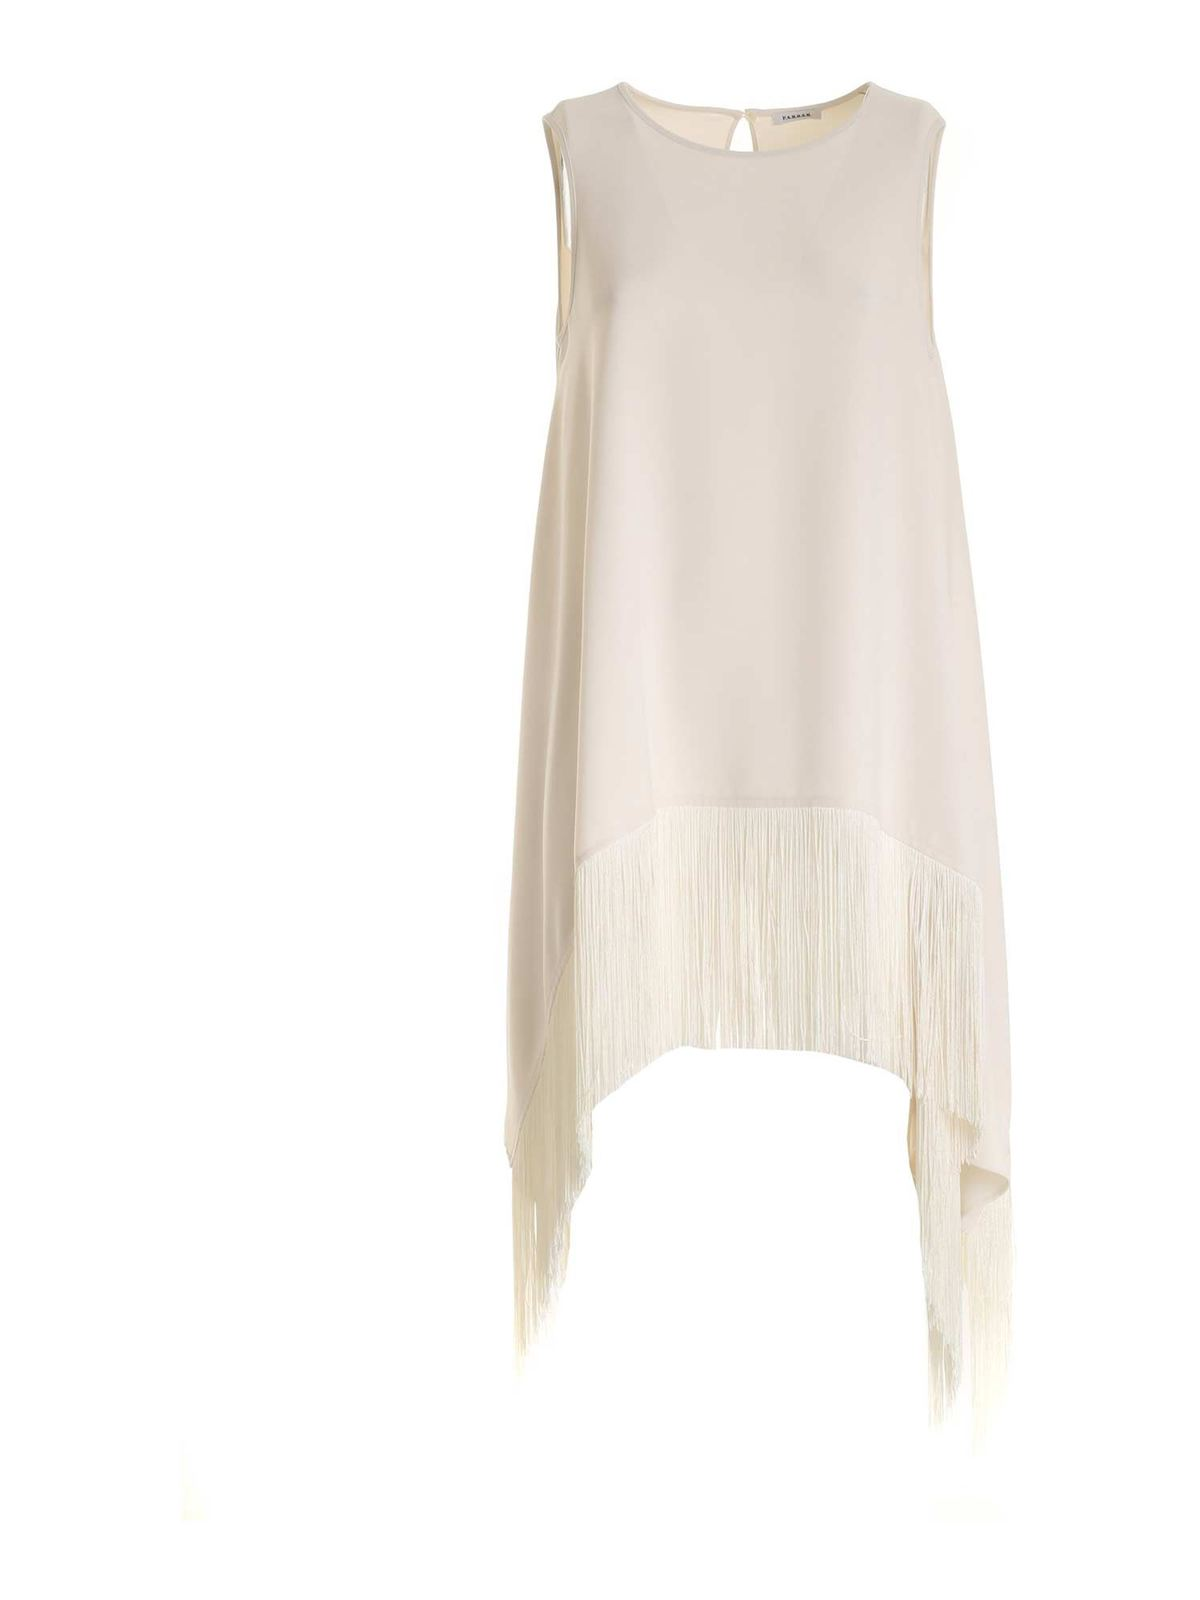 P.a.r.o.s.h. FRINGES CADY DRESS IN IVORY COLOR